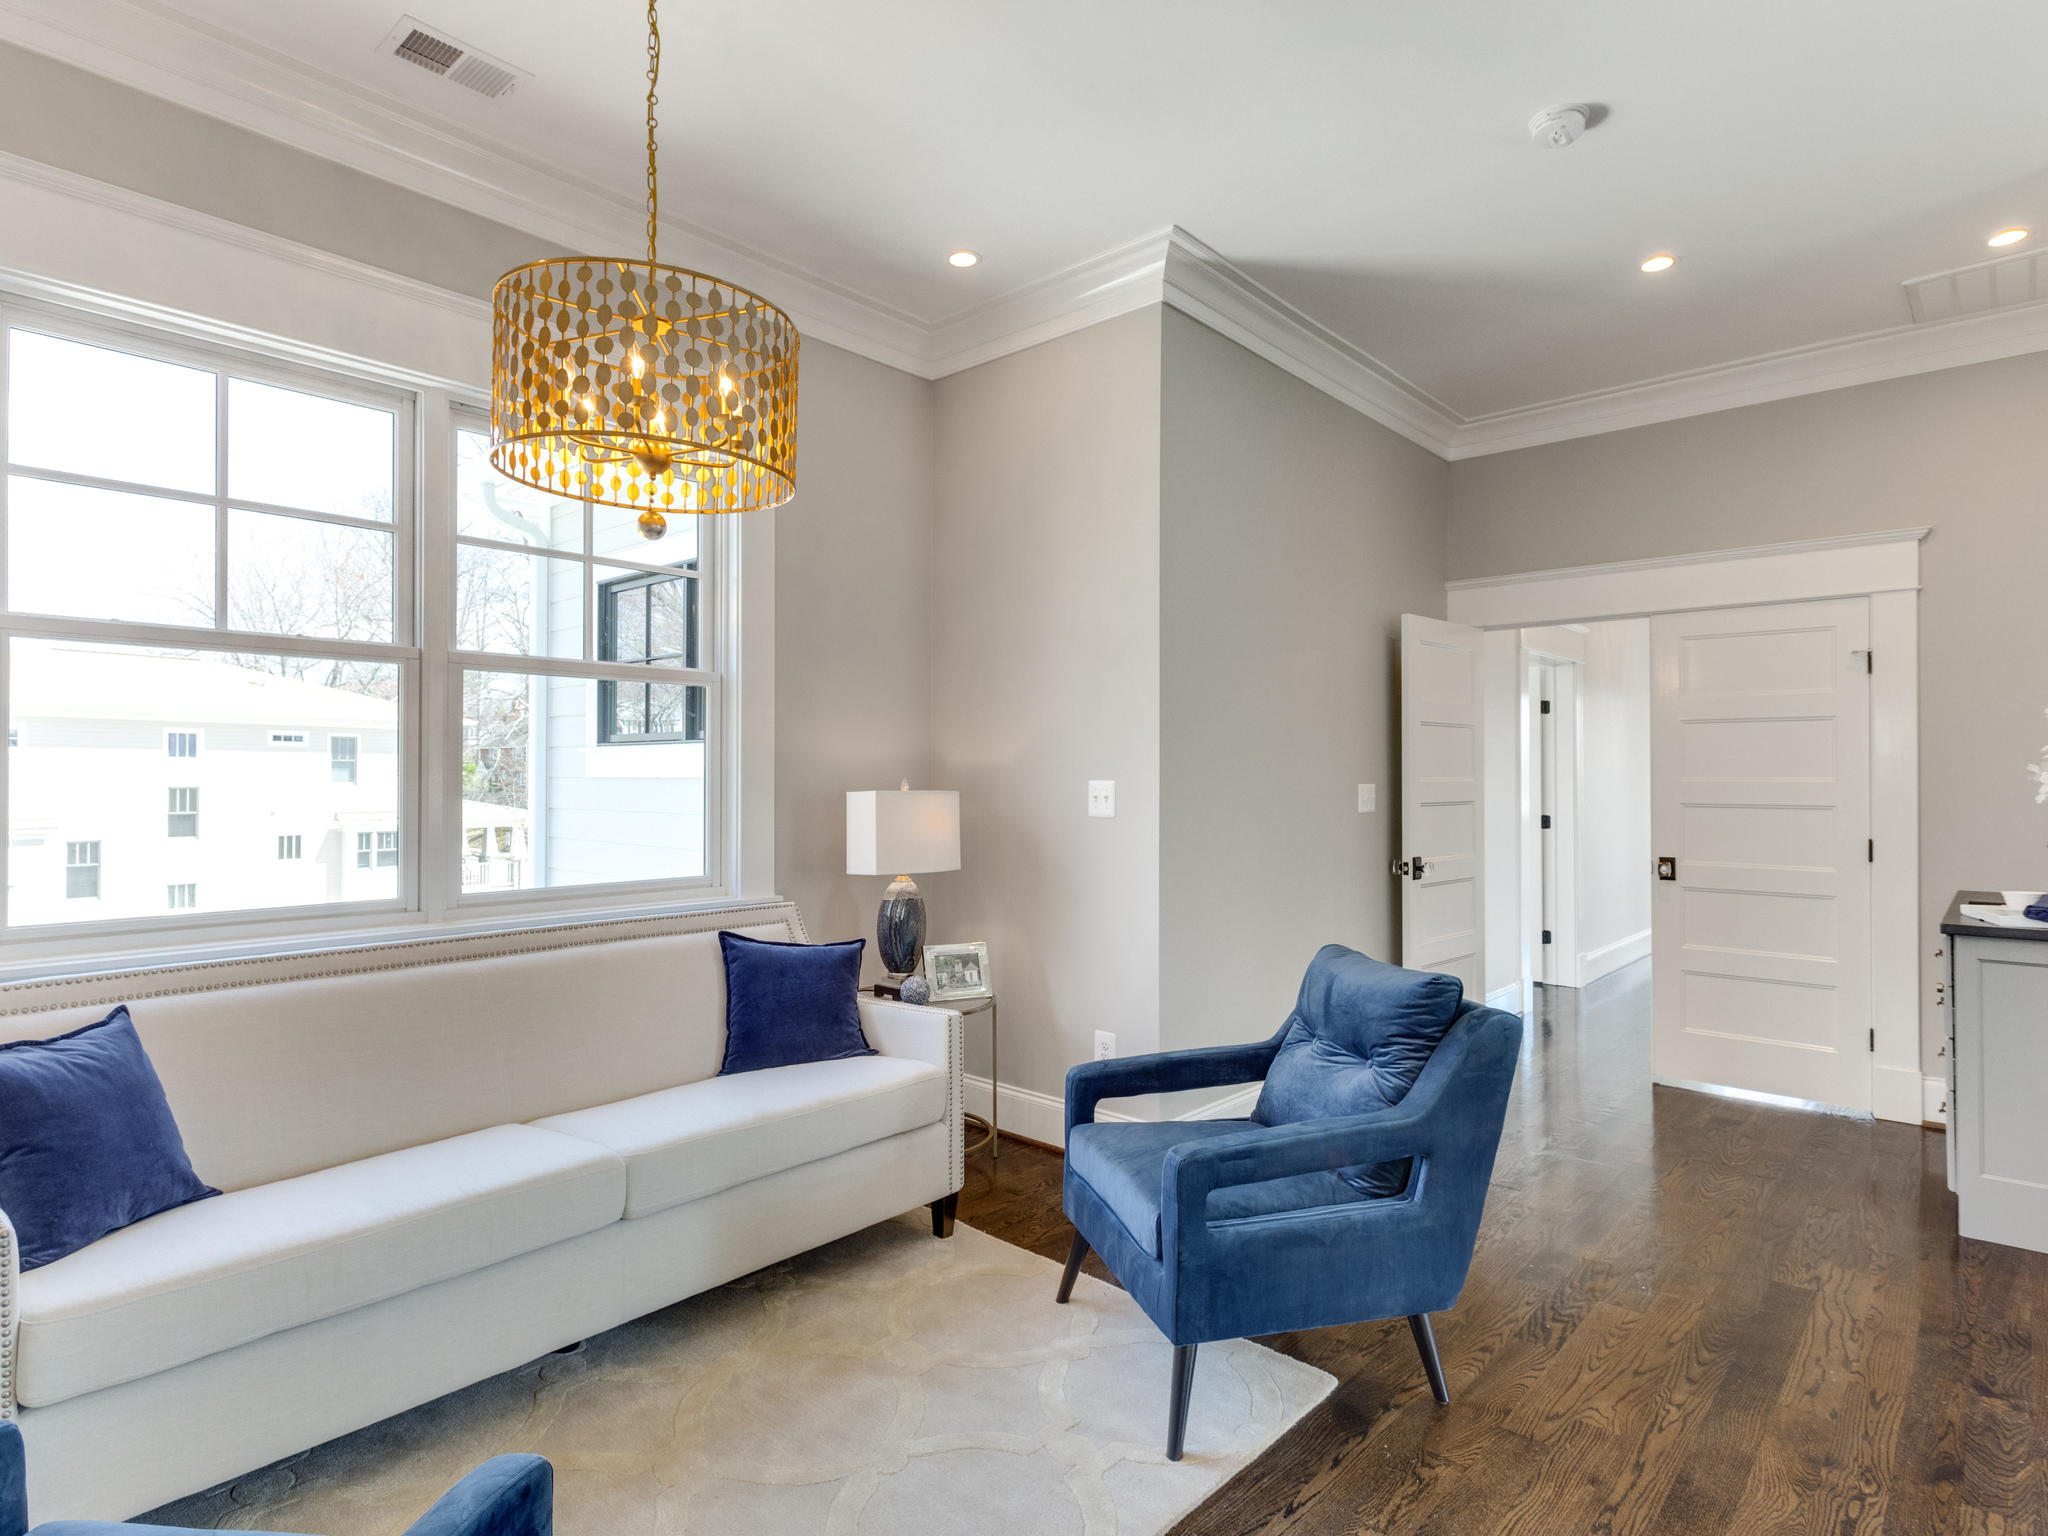 Master suite, weekend retreat. Custom Home by Custom Builder, North Arlington, VA 22207